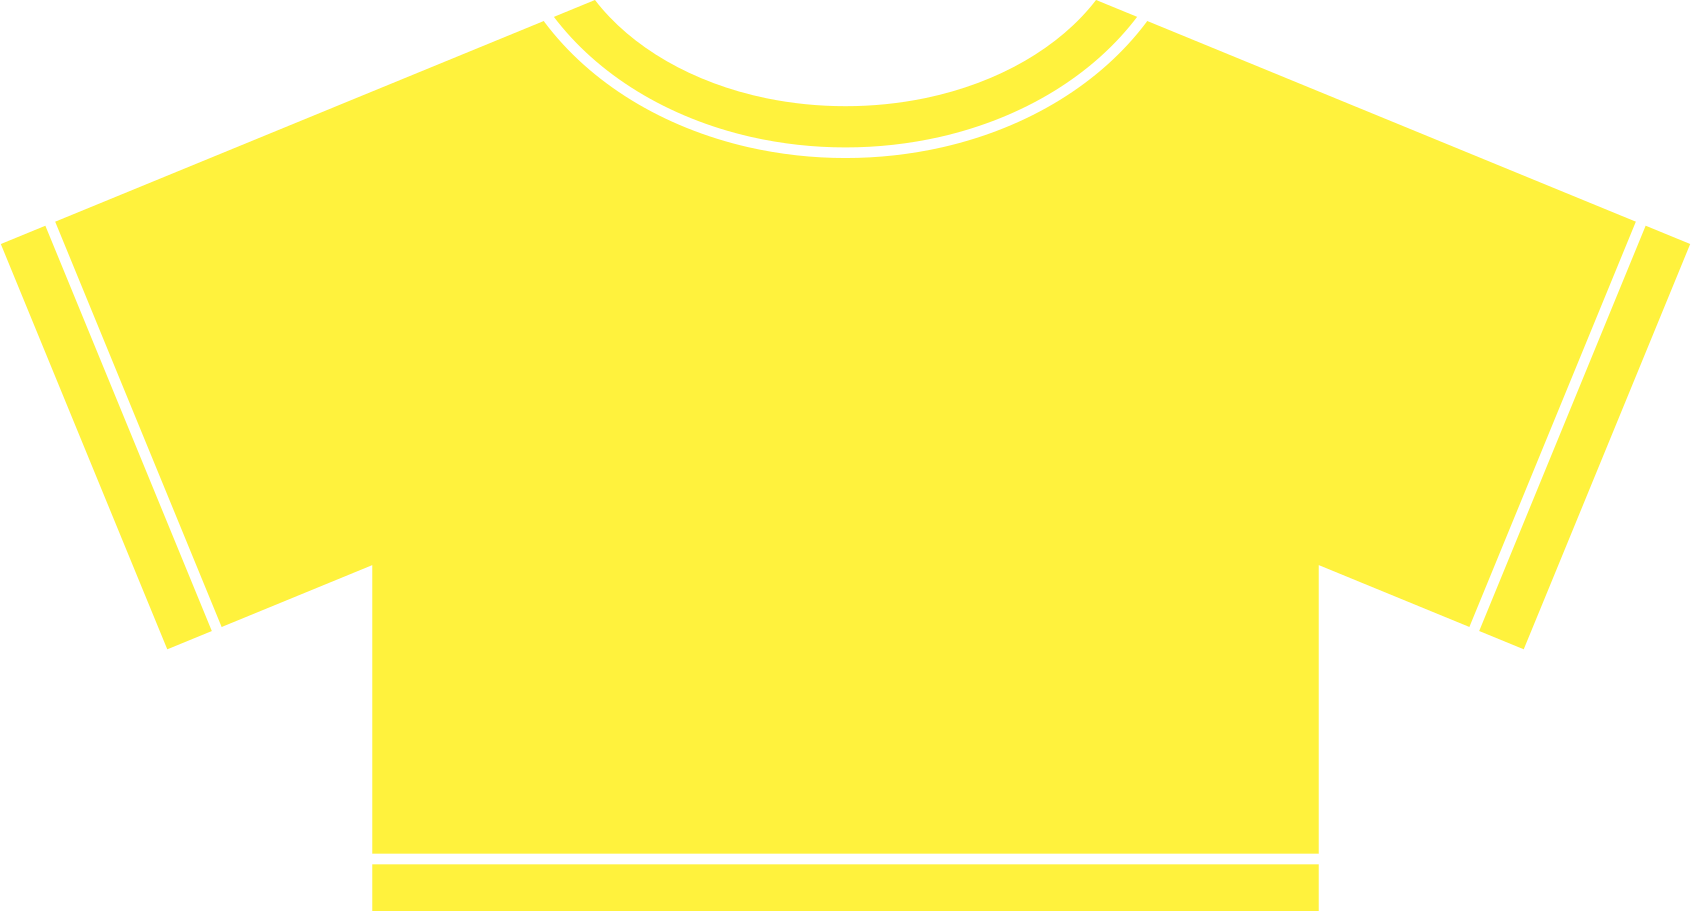 style t shirt images in PNG and SVG | Icons8 Illustrations